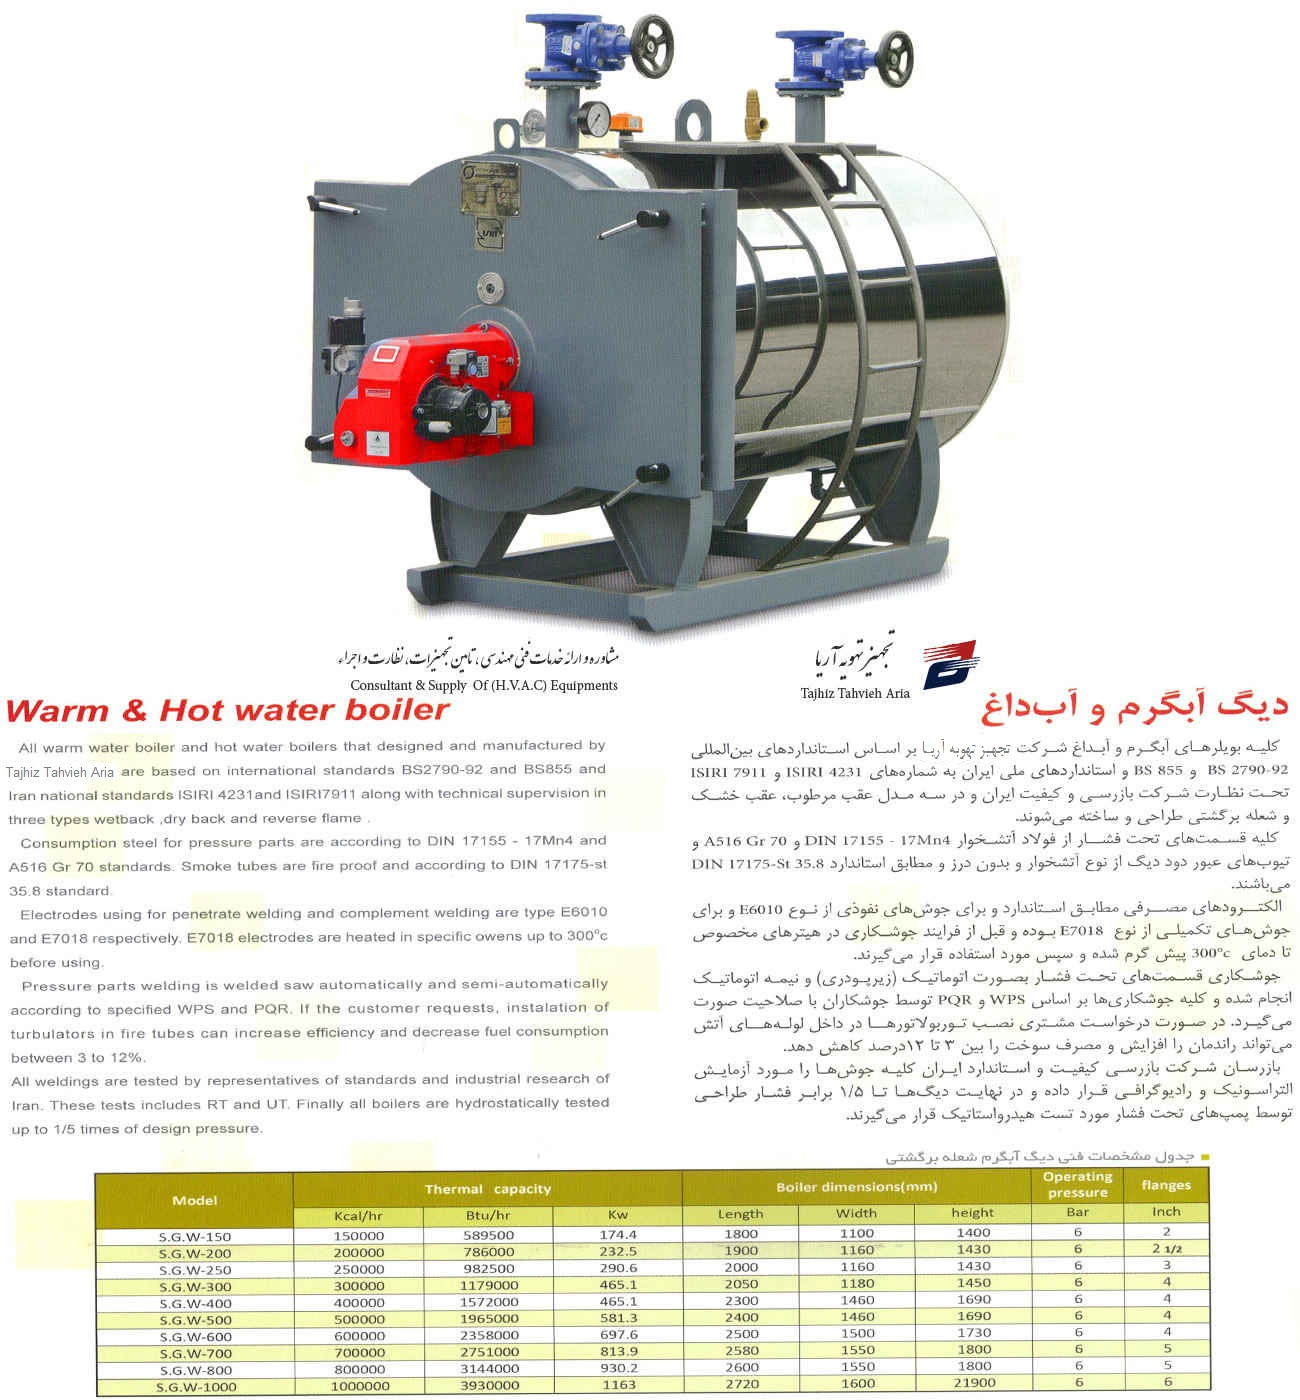 1 warm and hot water boiler